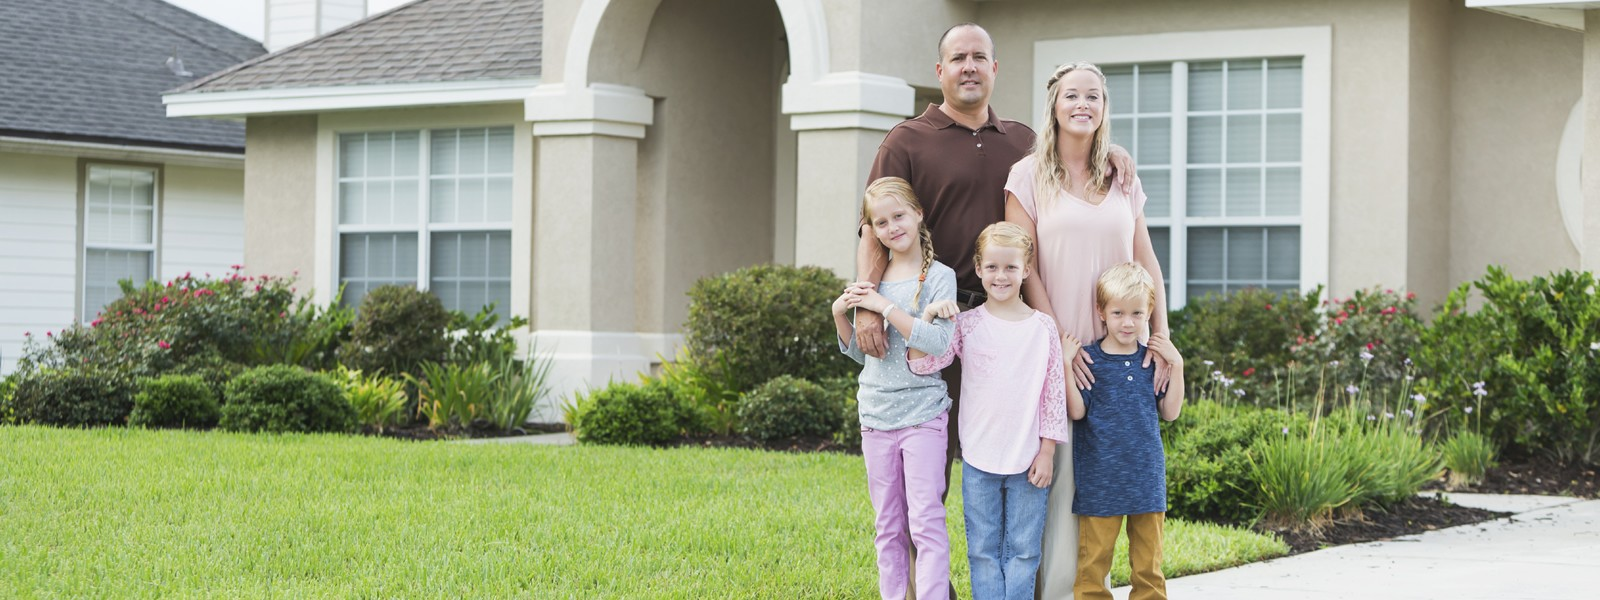 Finding the right house starts with finding the right Mortgage Professional. Click here to learn more about how Cornerstone Mortgage can help. View More